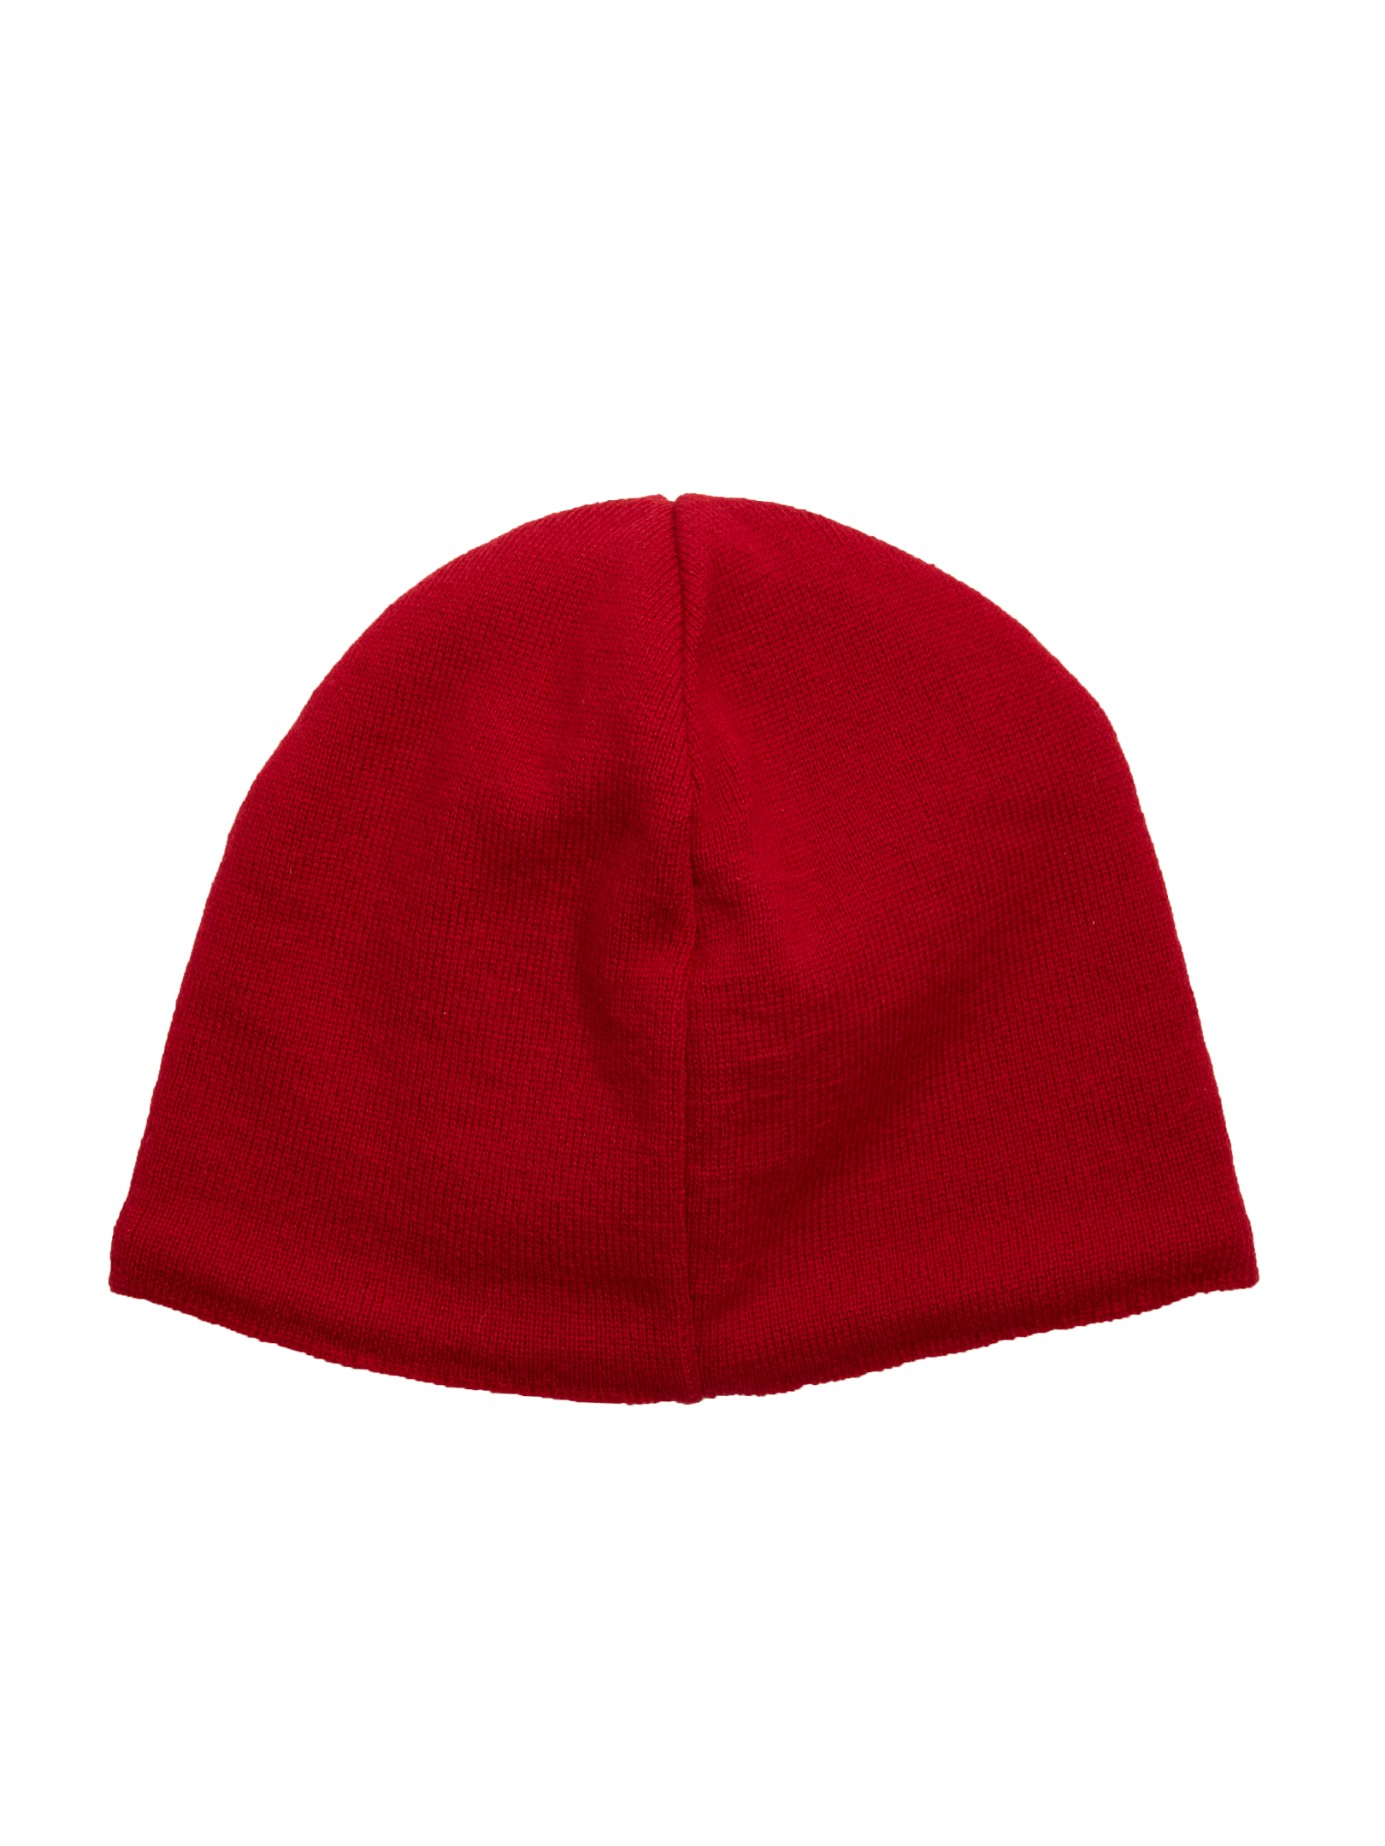 Canada Goose Fleece Lined Wool Beanie Hat In Red For Men